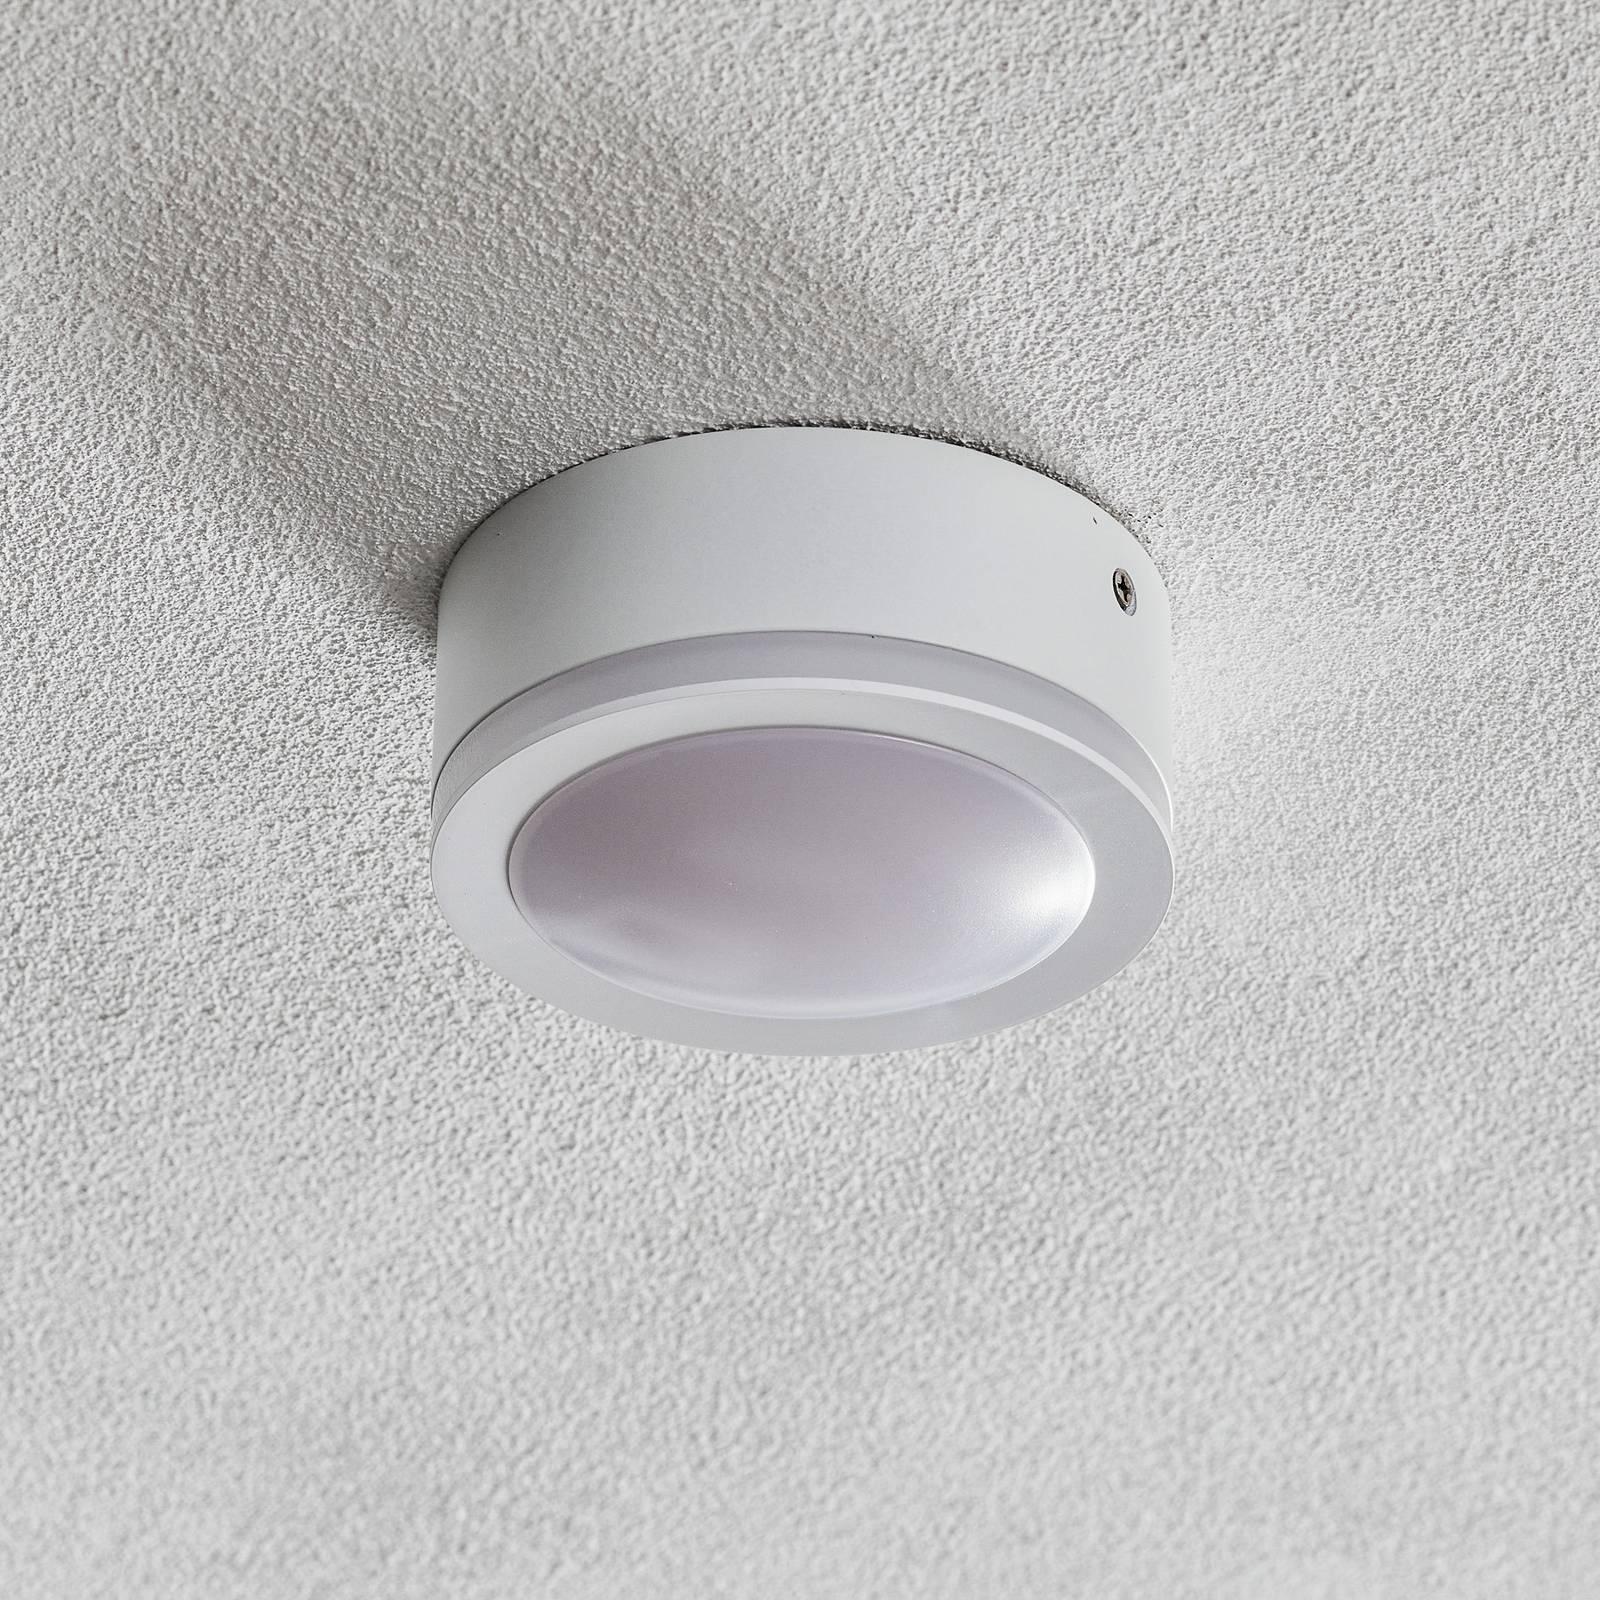 Round Biala LED surface-mounted spotlight, 10 cm Ø from Heitronic